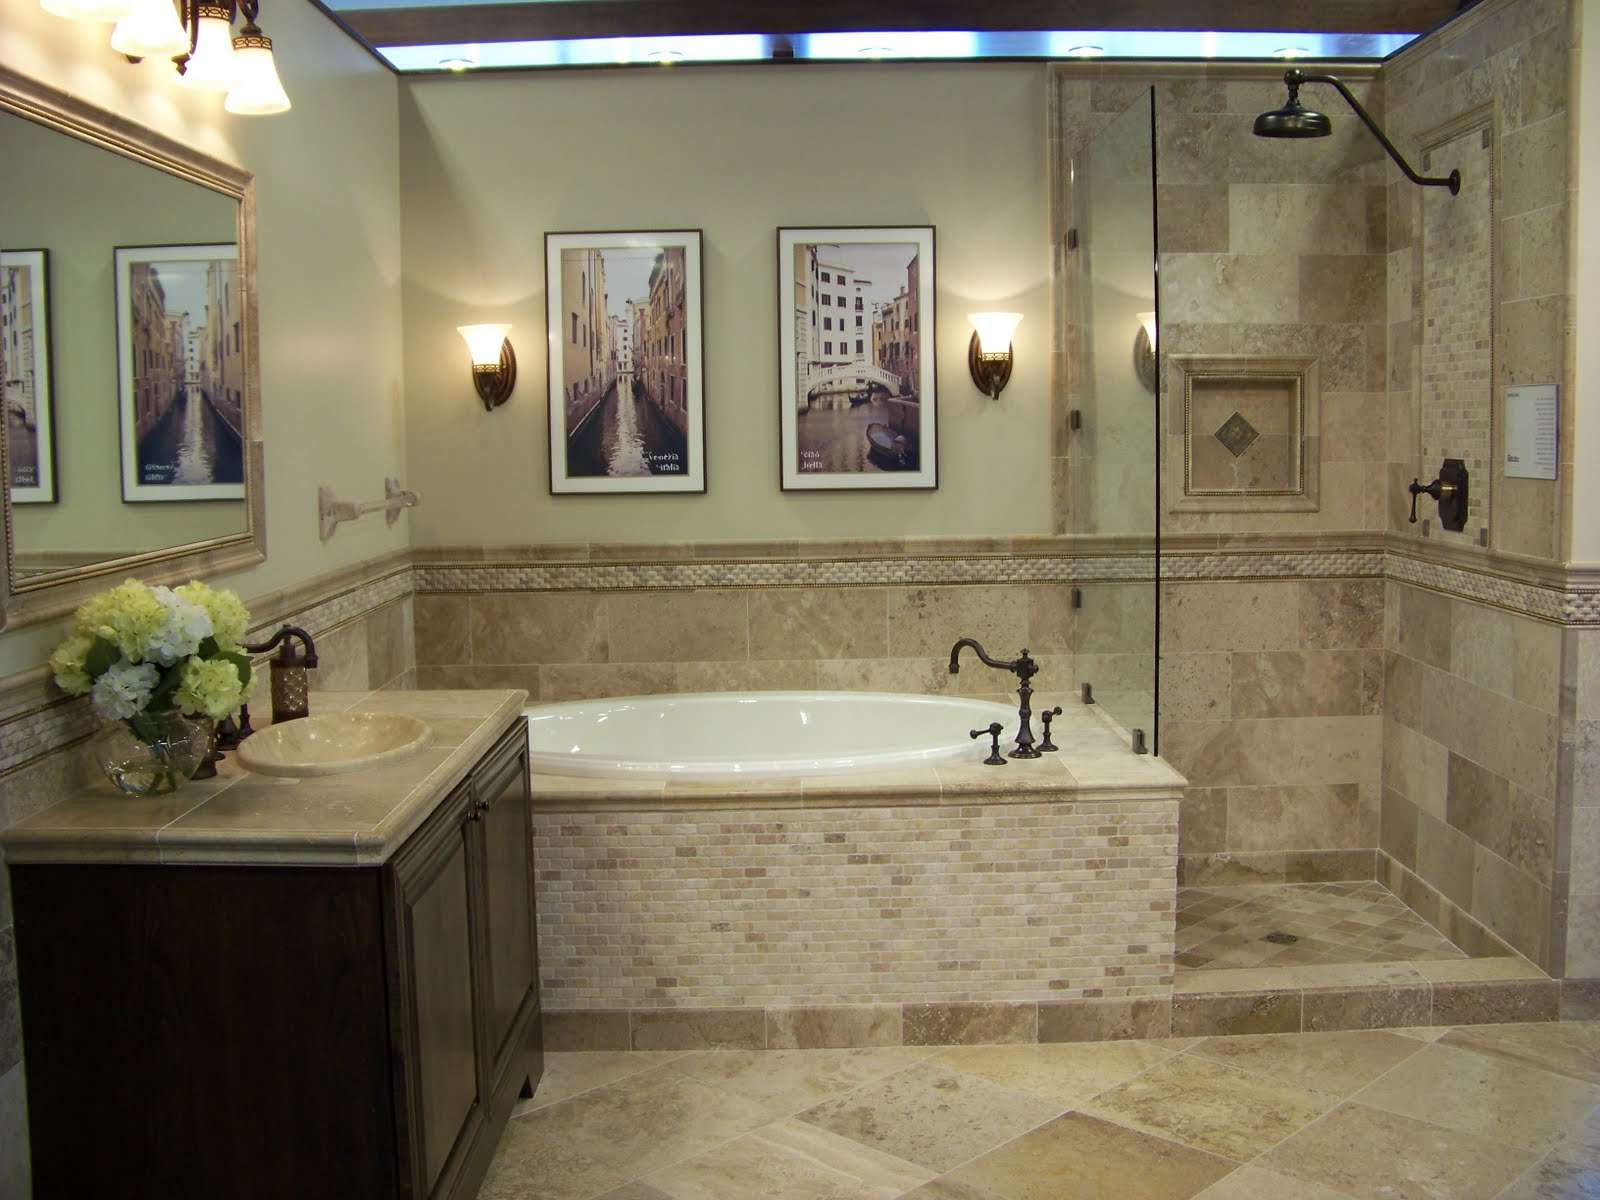 tile-for-bathroom-withal-mixture-of-travertine-tiles-gives-this-bathroom-an-earthy-natural